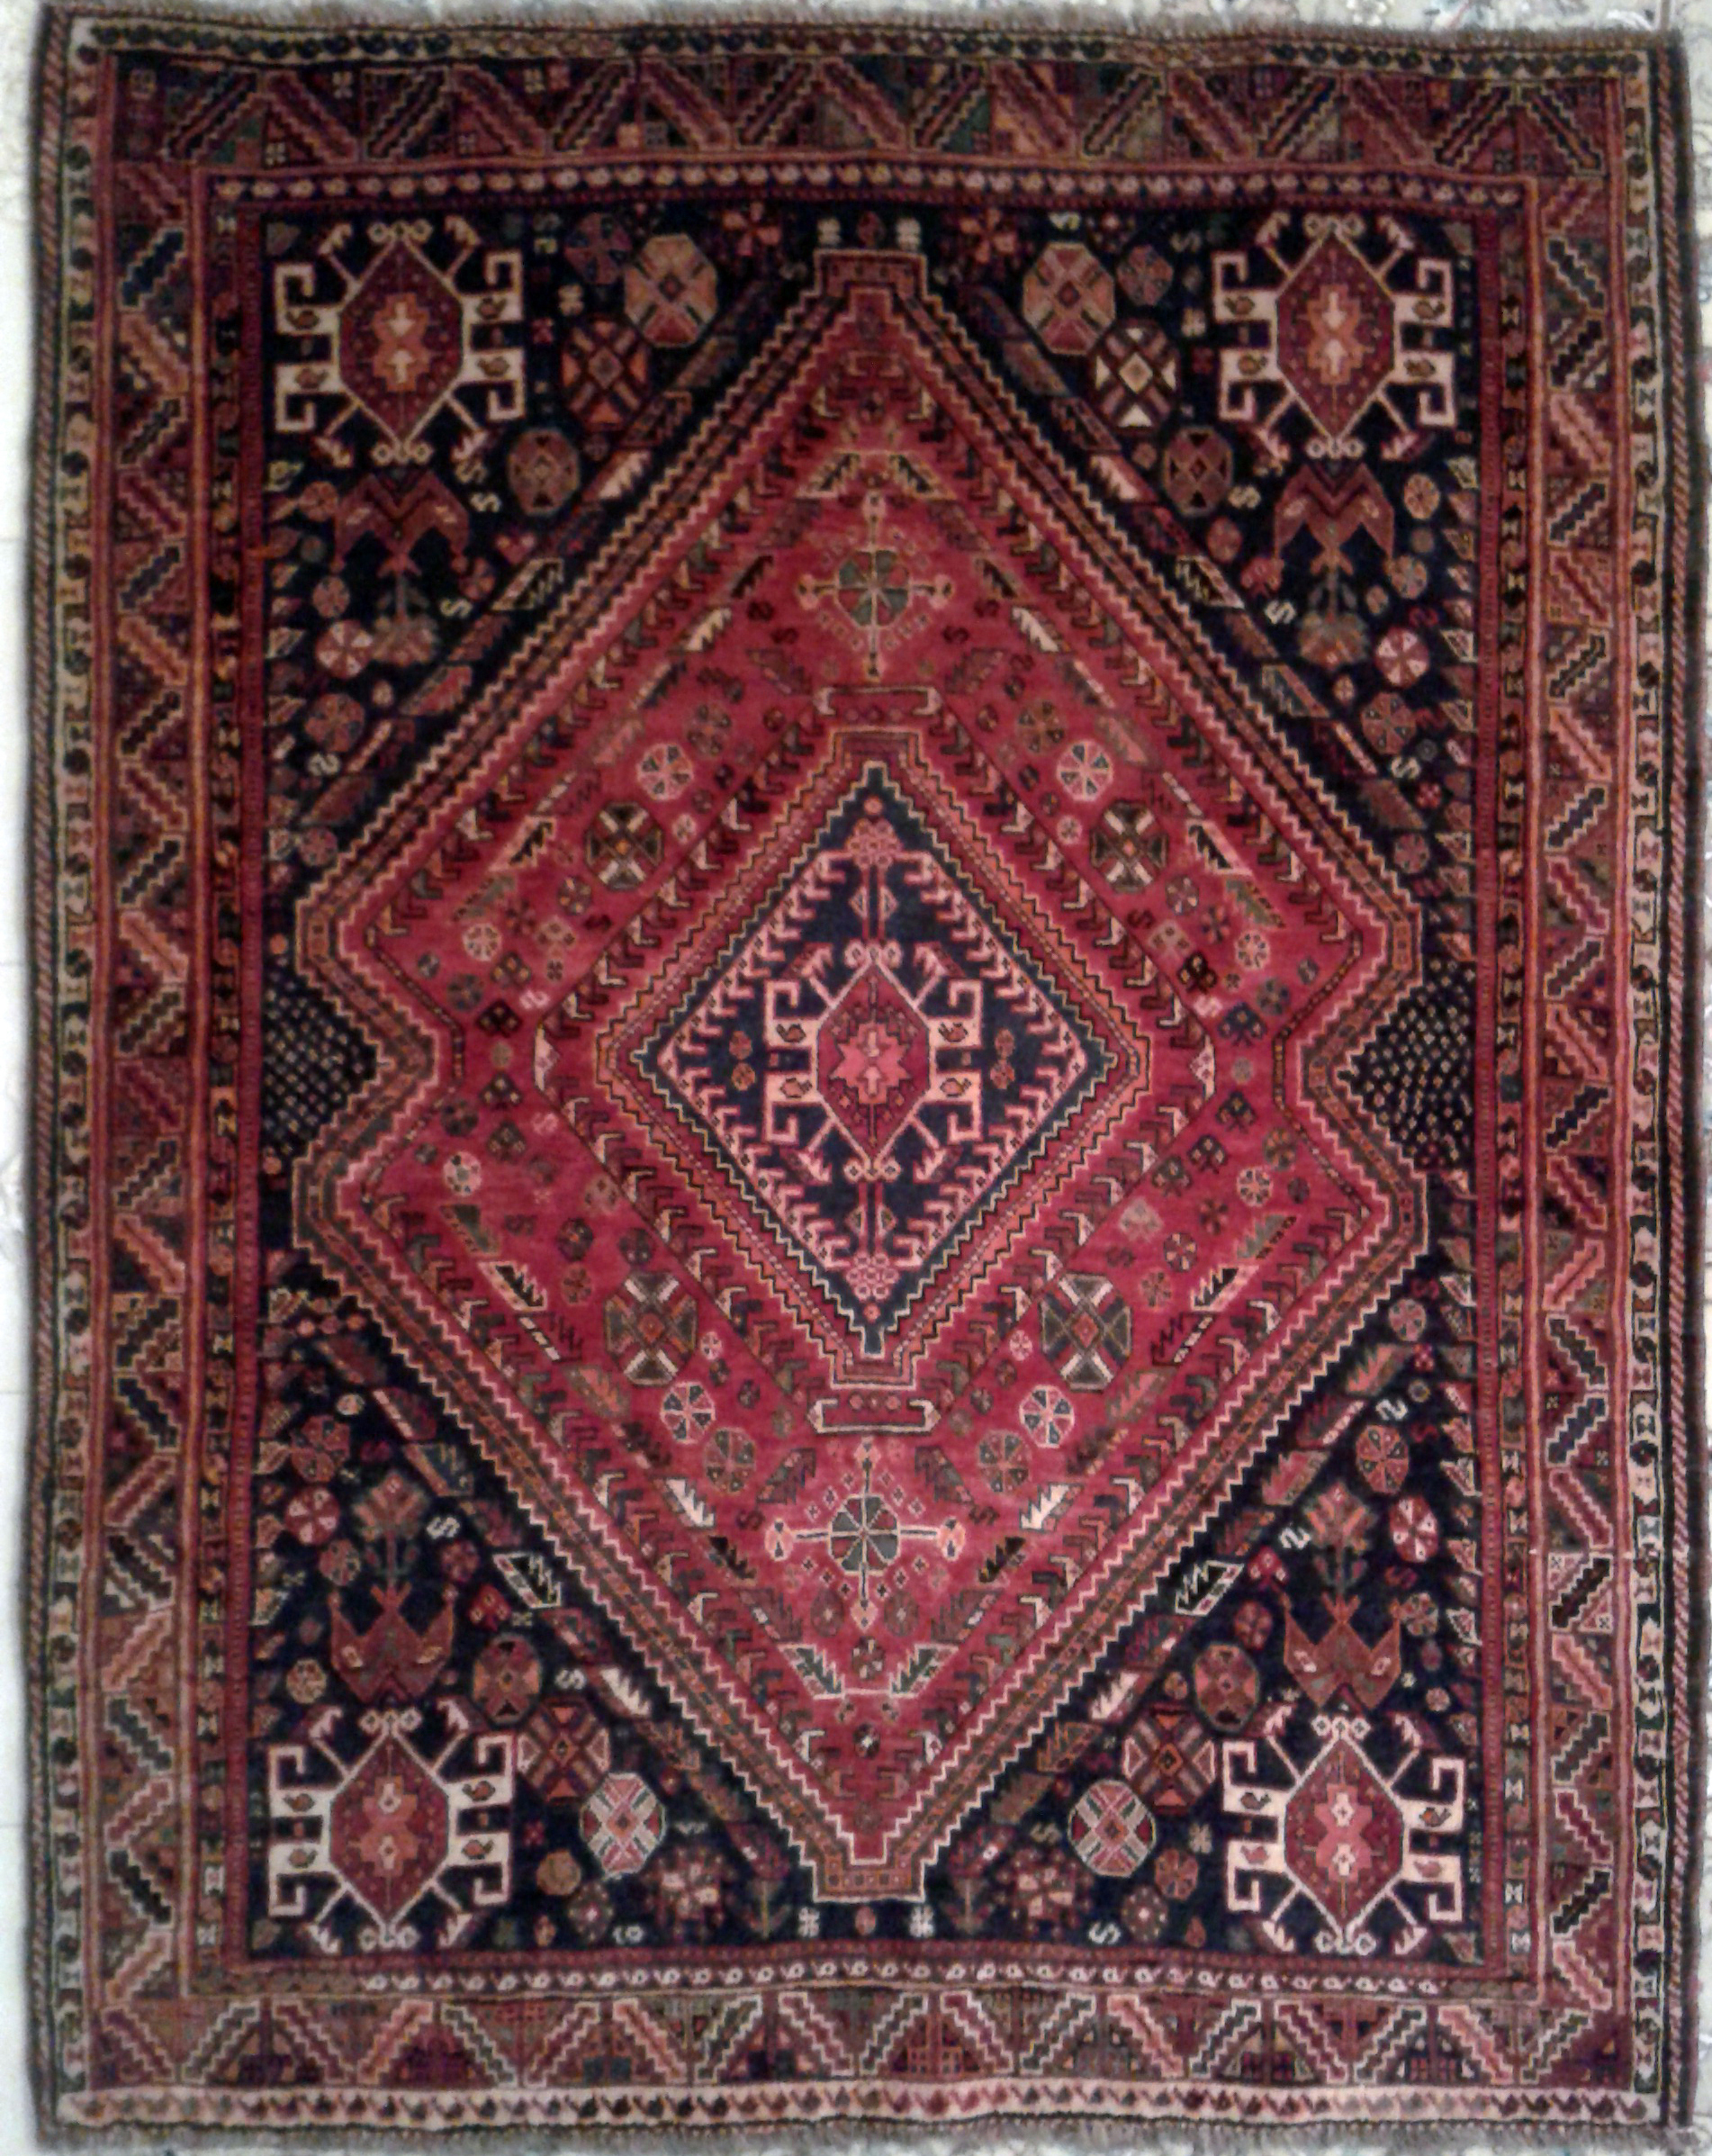 Shiraz Rug Wikipedia